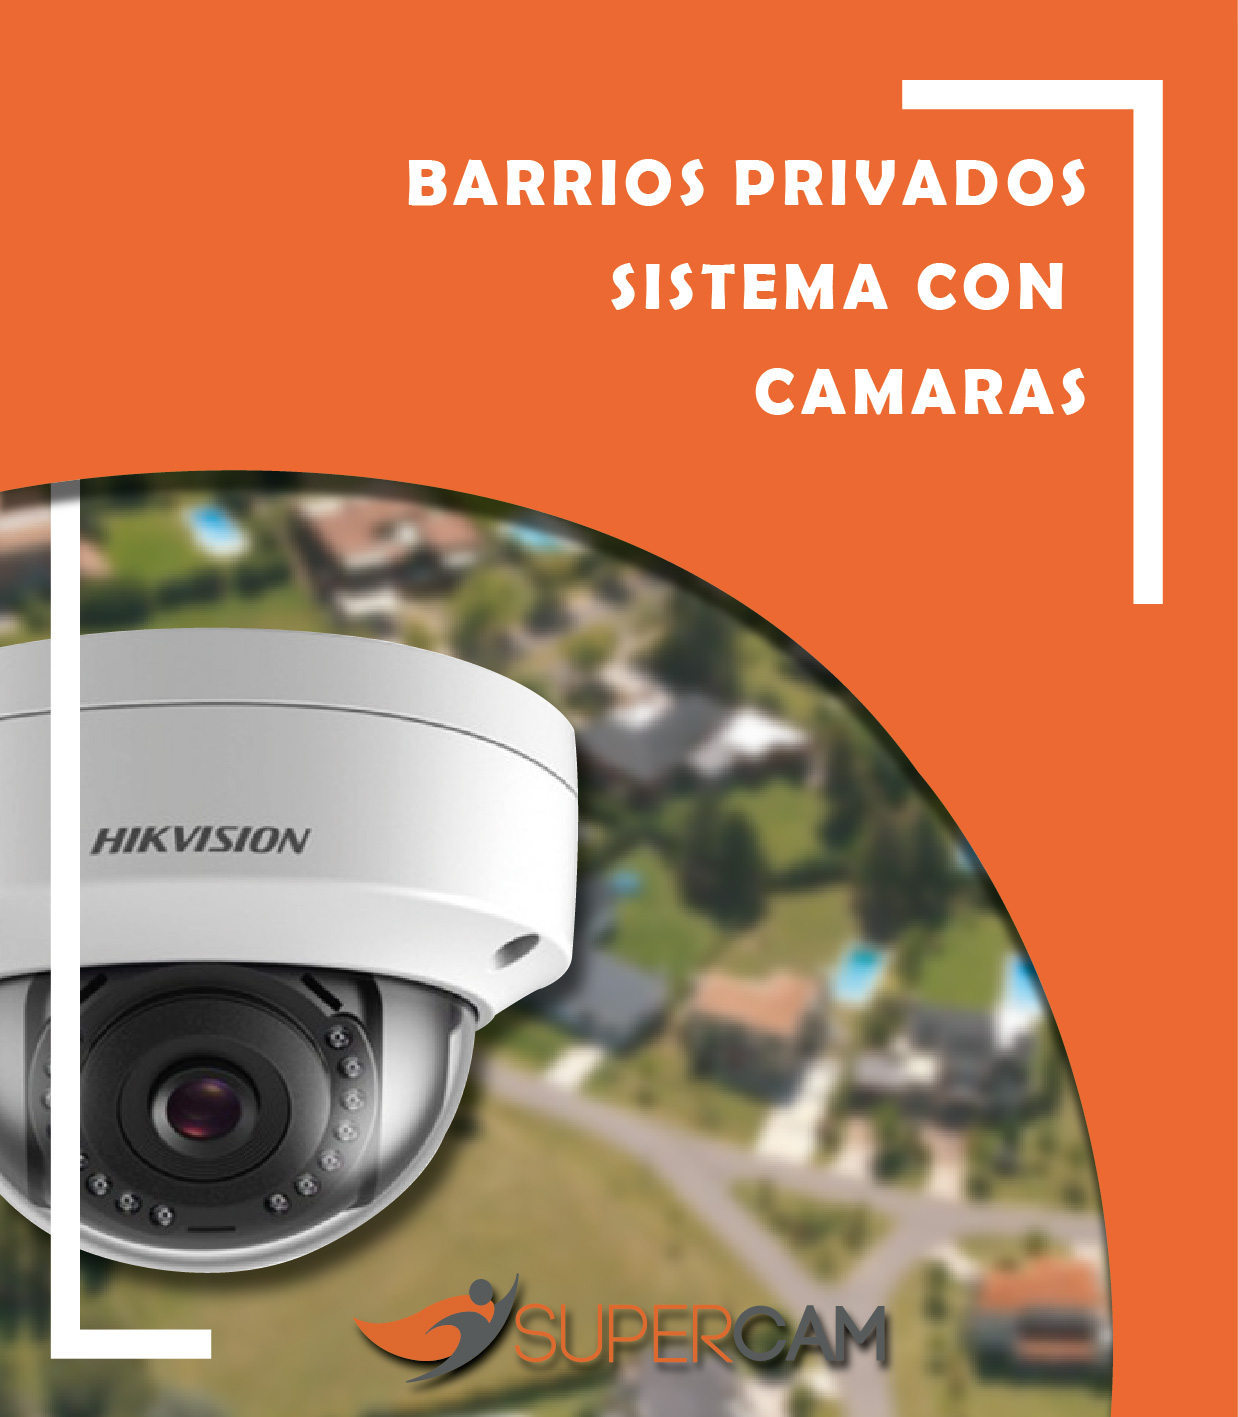 Barrios Privados